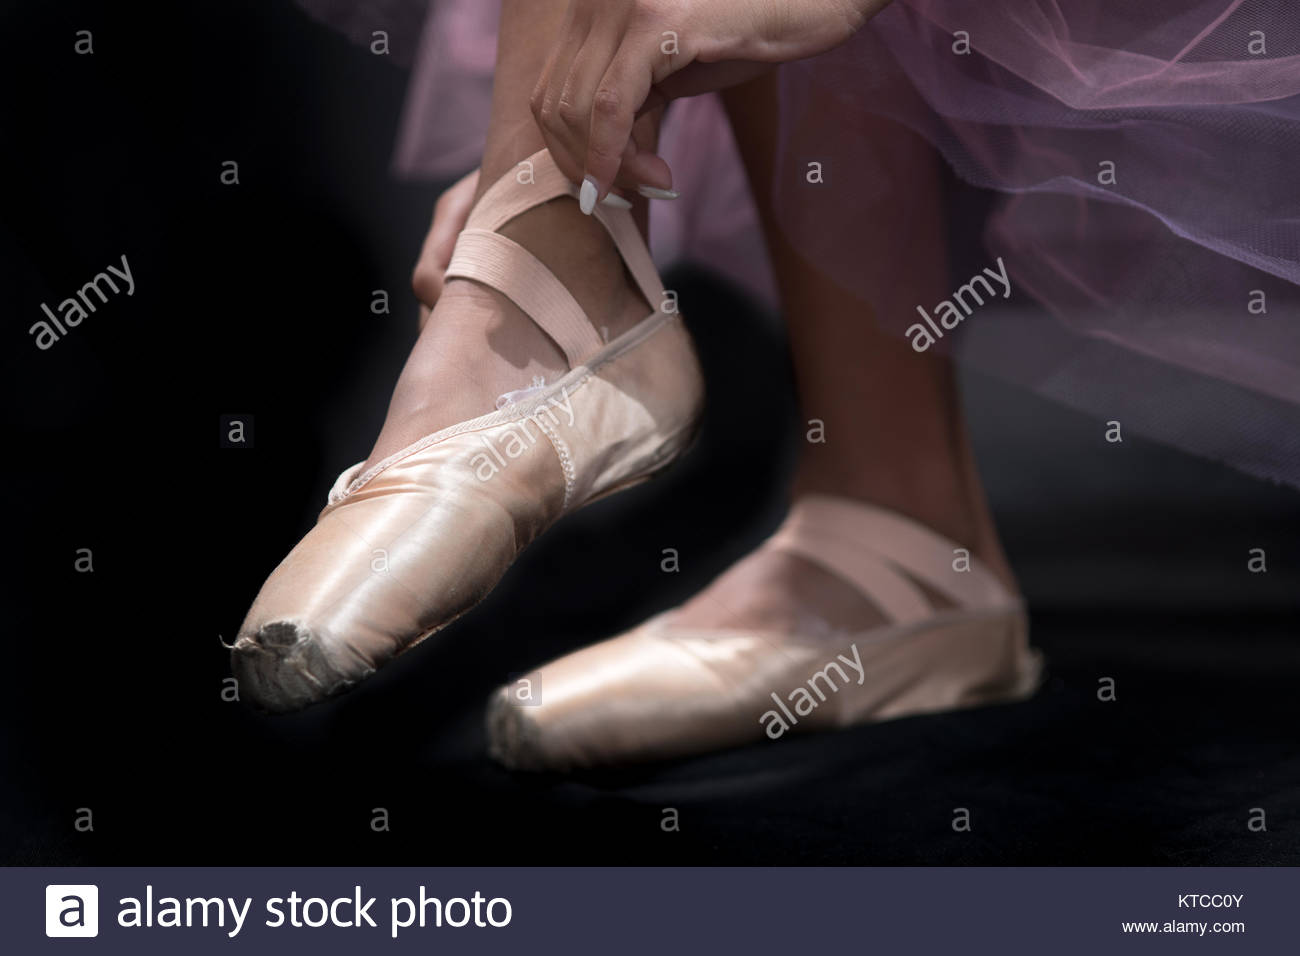 feet of a teen girl ballerina in points, adjusting shoes. - Stock Image